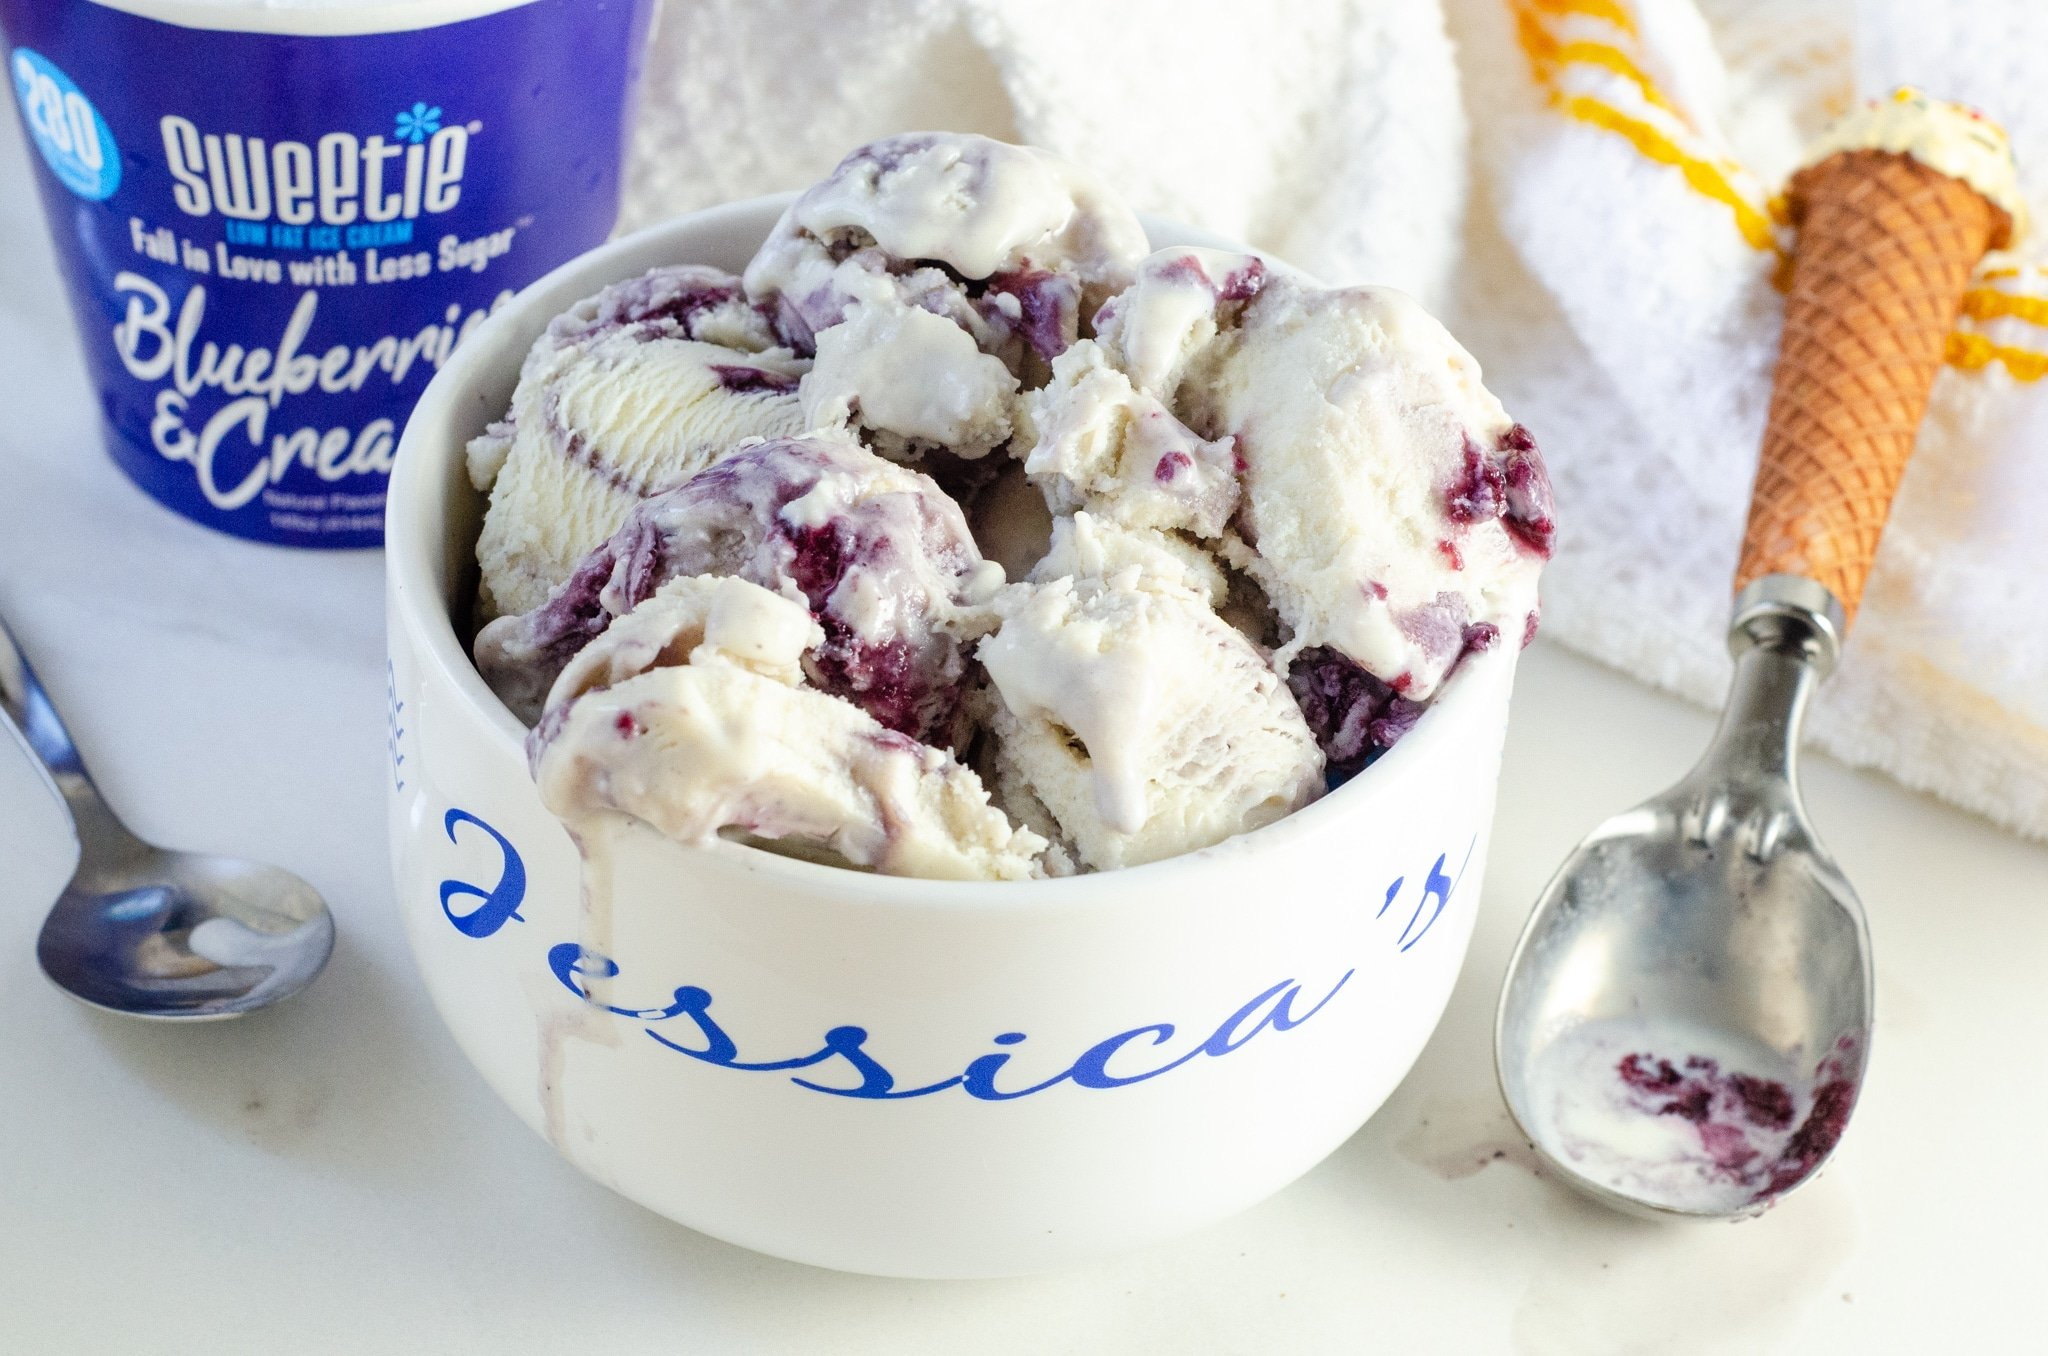 Sweetie Blueberry and Cream in Bowl. Sweetie® Ice cream boasts a wonderful ingredient called DOLCIA PRIMA Allulose, a non-artificial sweetening ingredient that has no unpleasant aftertaste, and provides all the taste, texture, and functionality of sugar with 90% fewer calories!